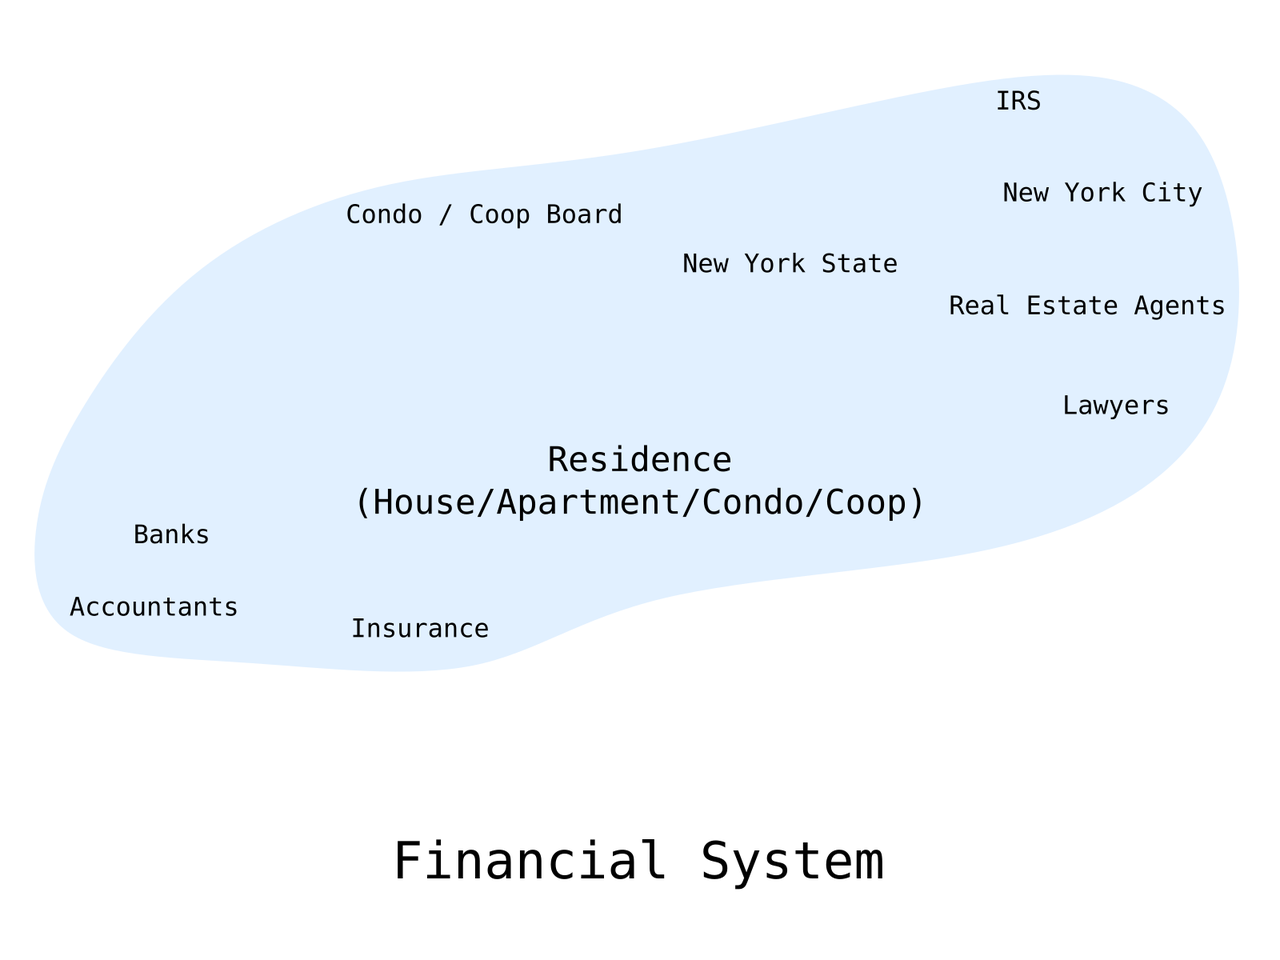 /images/itp/temporary_expert/week1/system_map_financial.png